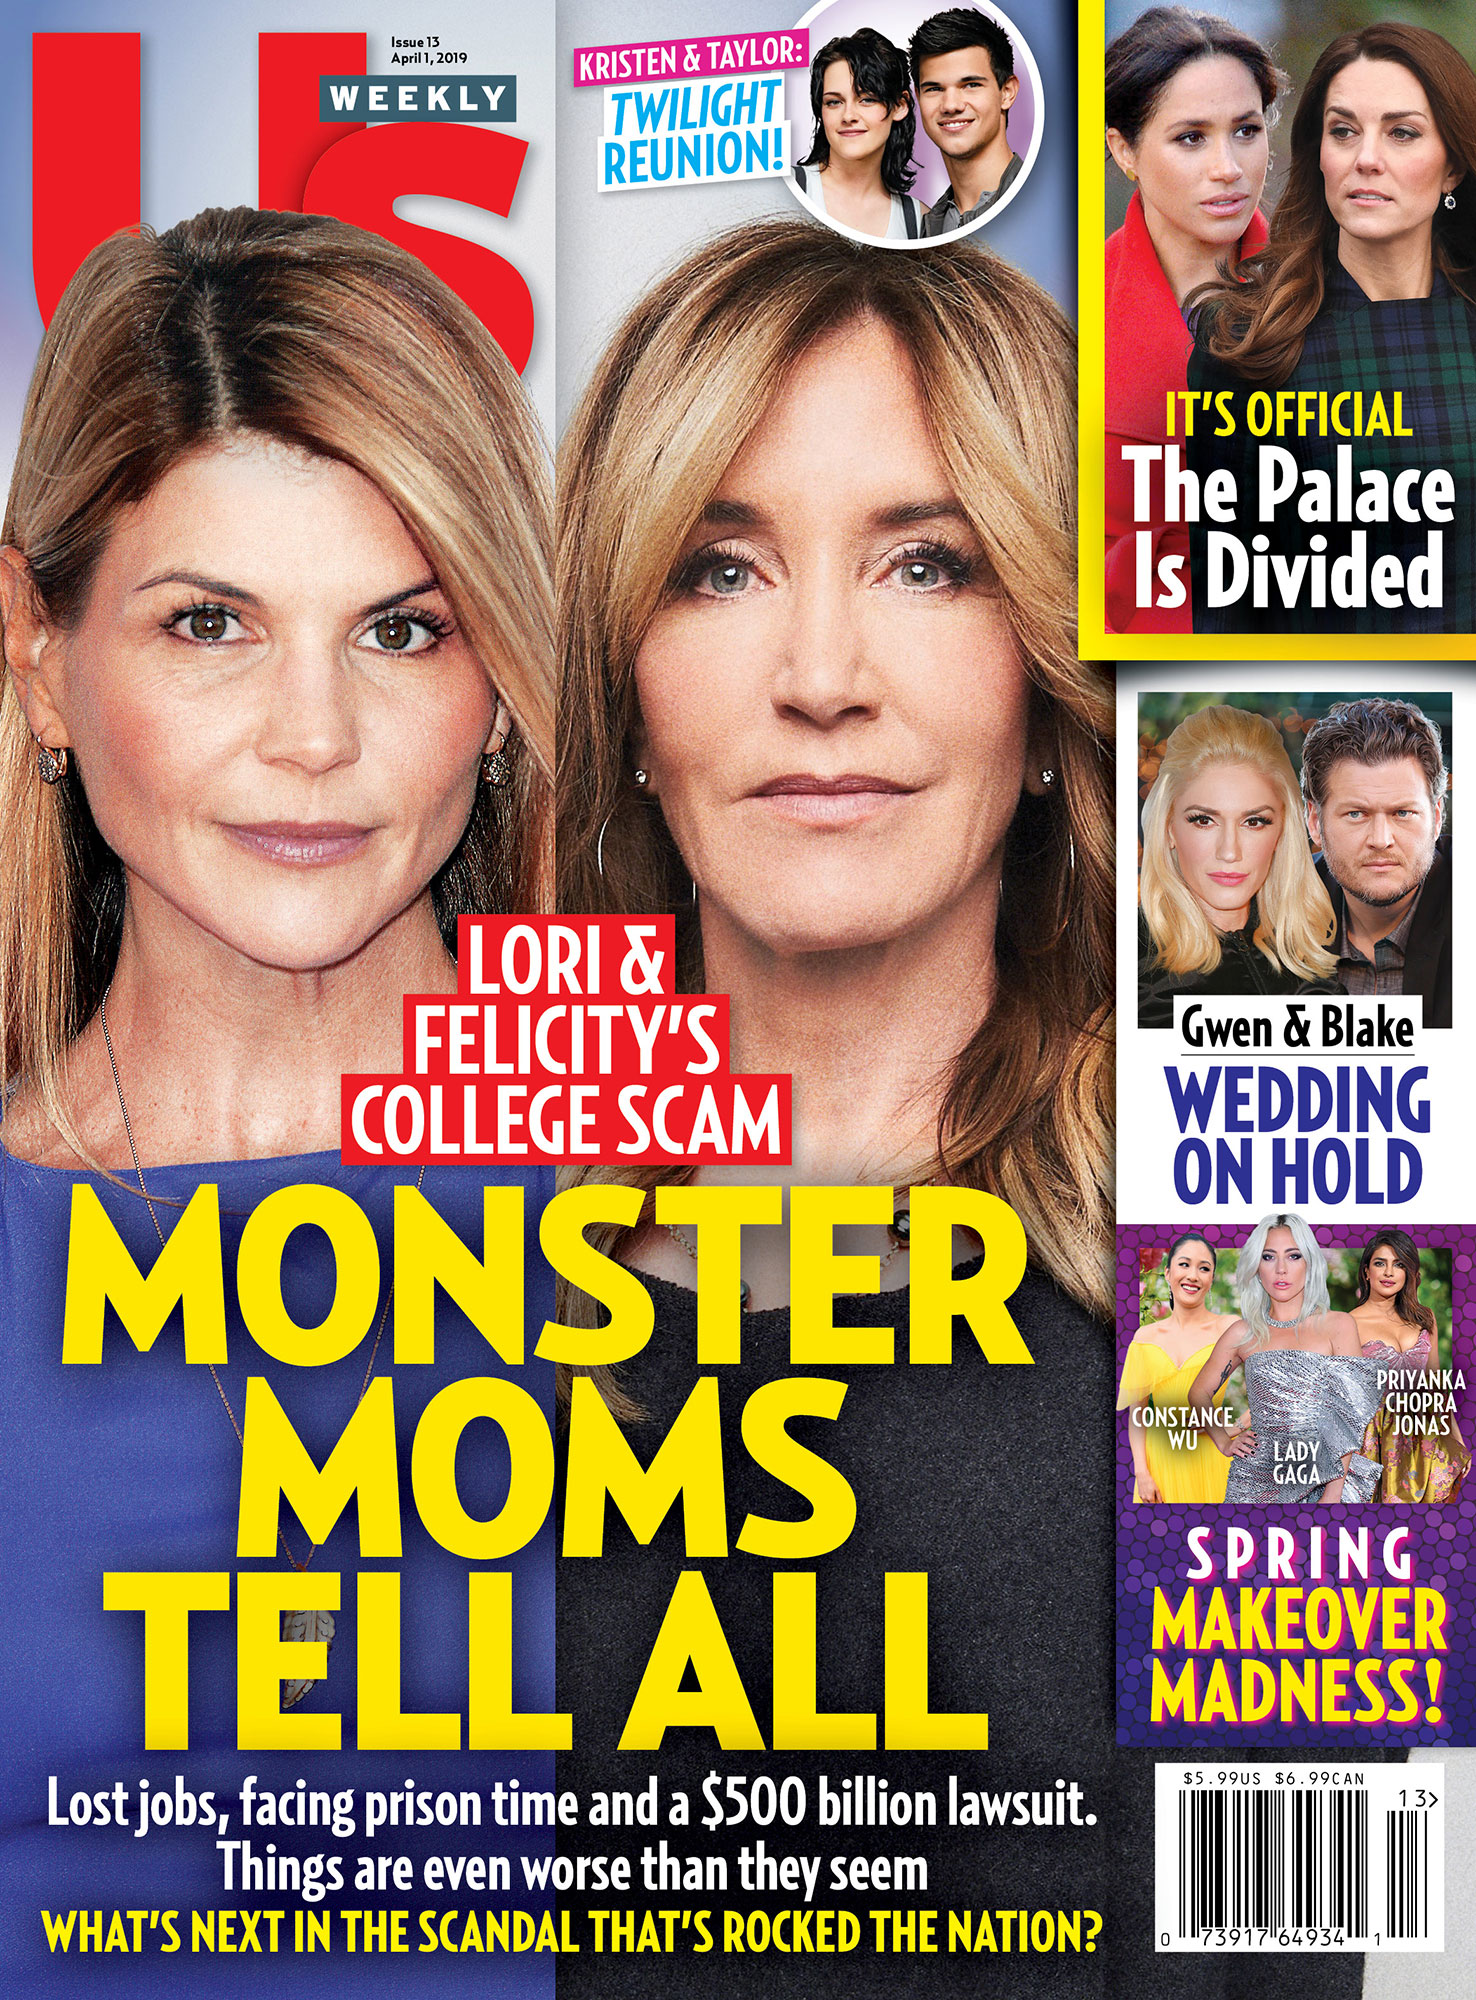 William H. Macy Is 'Heartbroken,' Been in Tears Over College Scam Scandal - Lori-Loughlin-and-Felicity-Huffman-UW1319_cover_ns